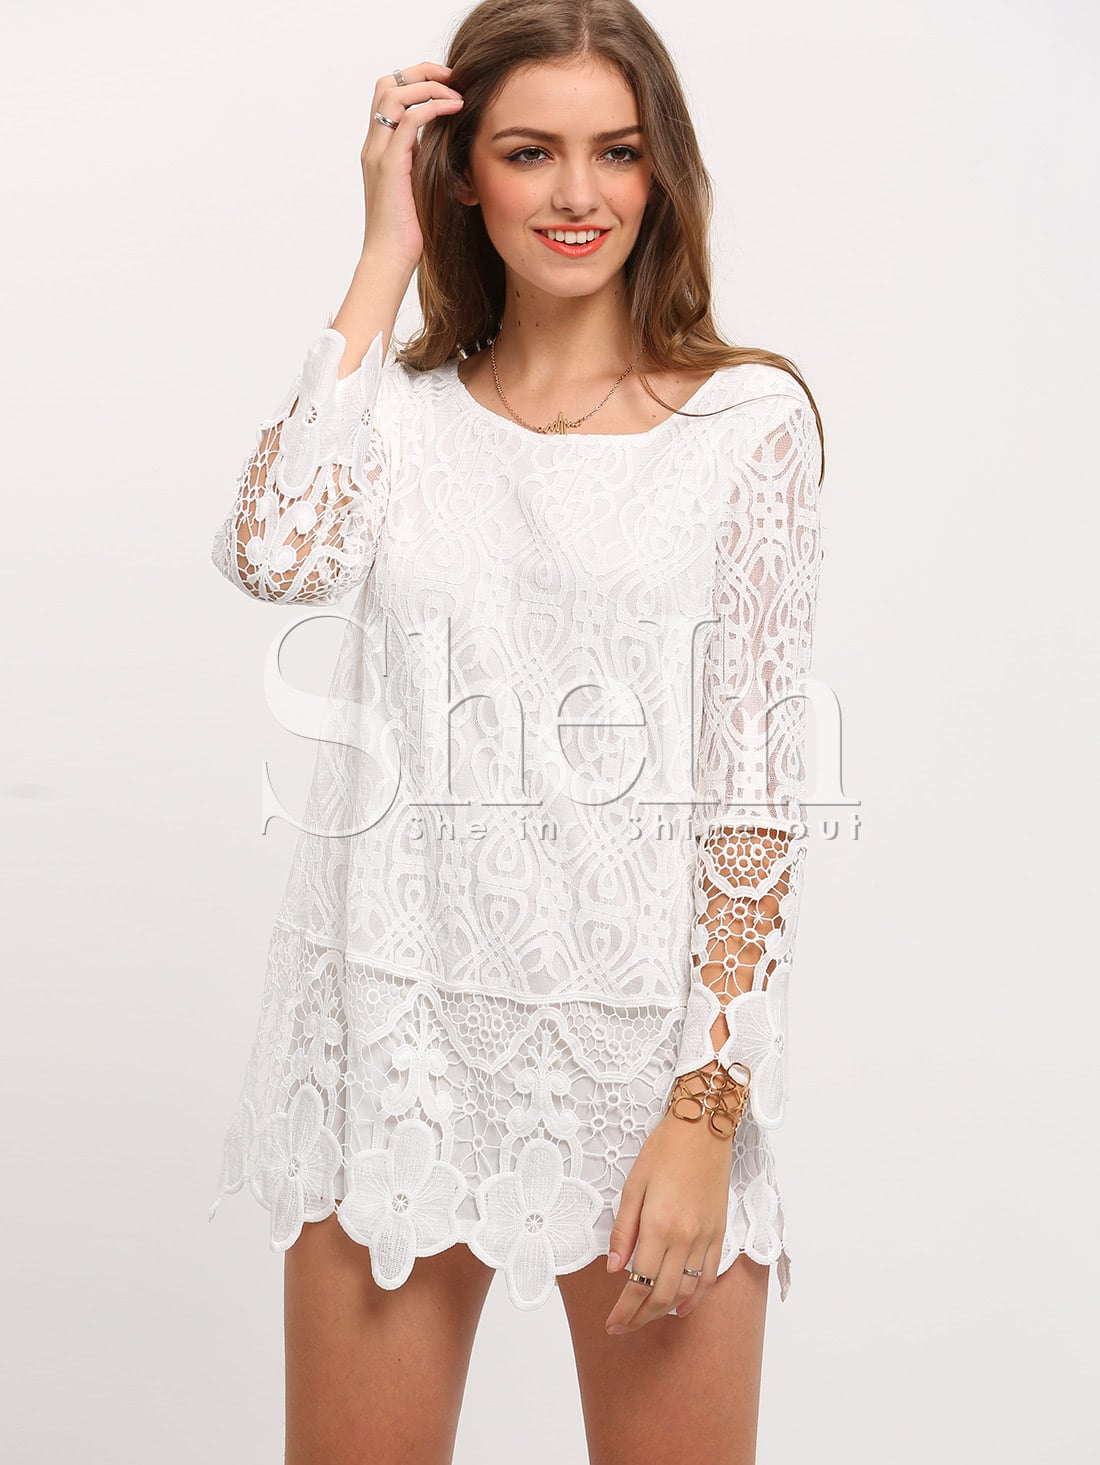 Crochet Lace Dress : White Long Sleeve Crochet Lace Dress -SheIn(Sheinside)